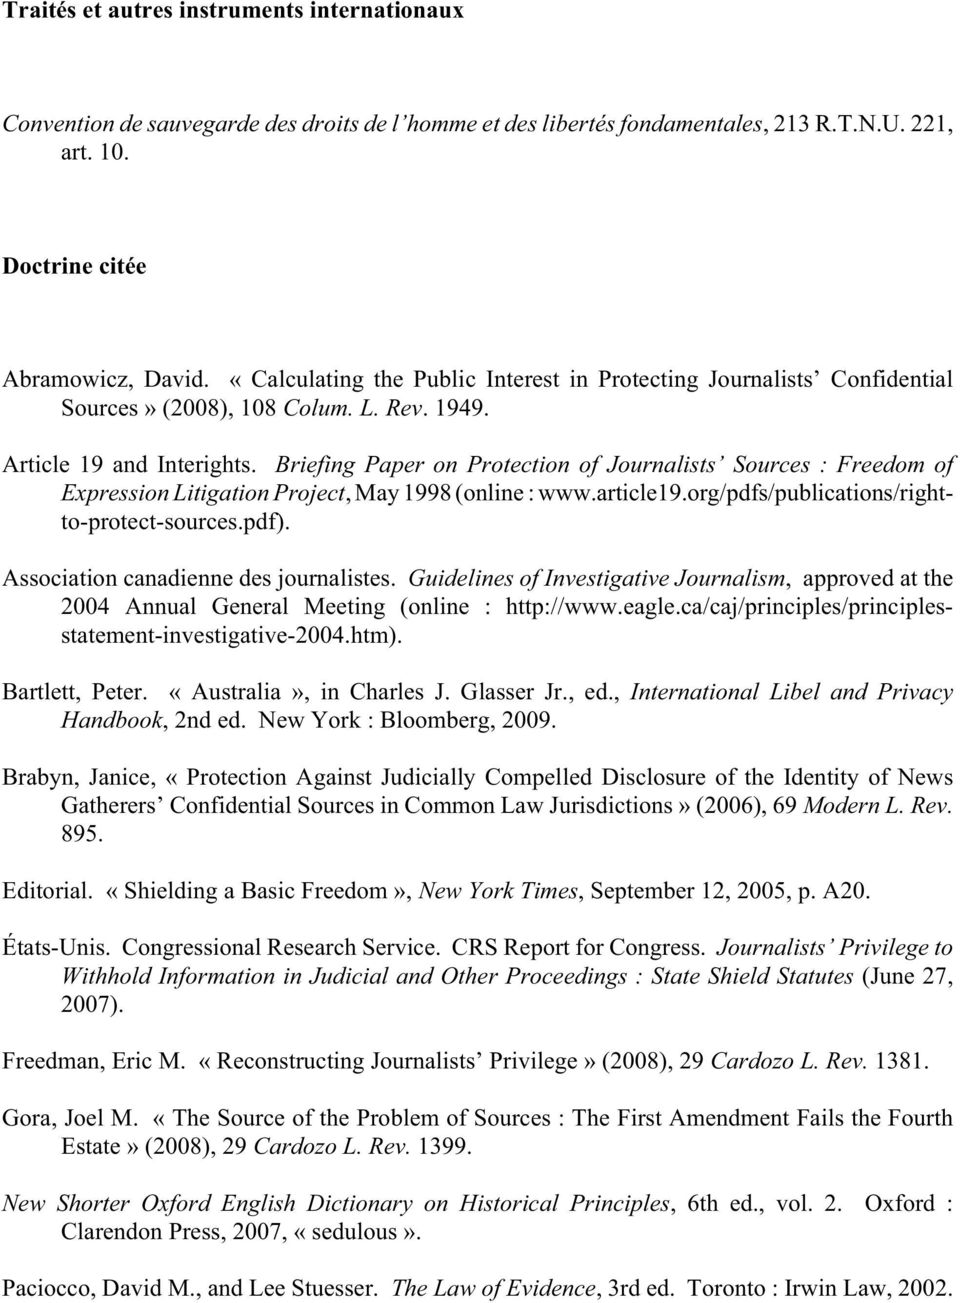 Briefing Paper on Protection of Journalists Sources : Freedom of Expression Litigation Project, May 1998 (online : www.article19.org/pdfs/publications/rightto-protect-sources.pdf).